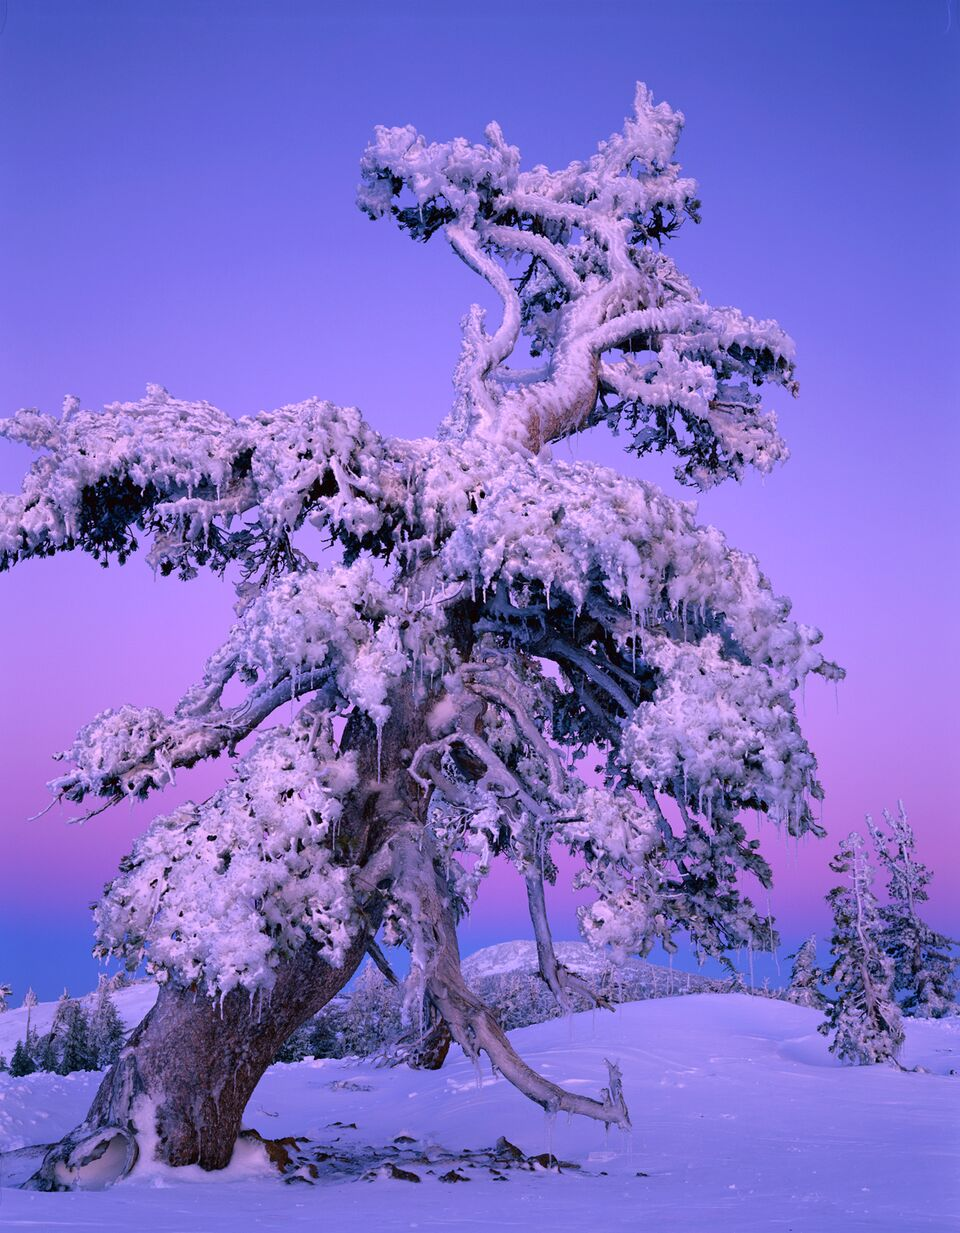 Whitebark pine in winter. Photo by @brucejackson.com.